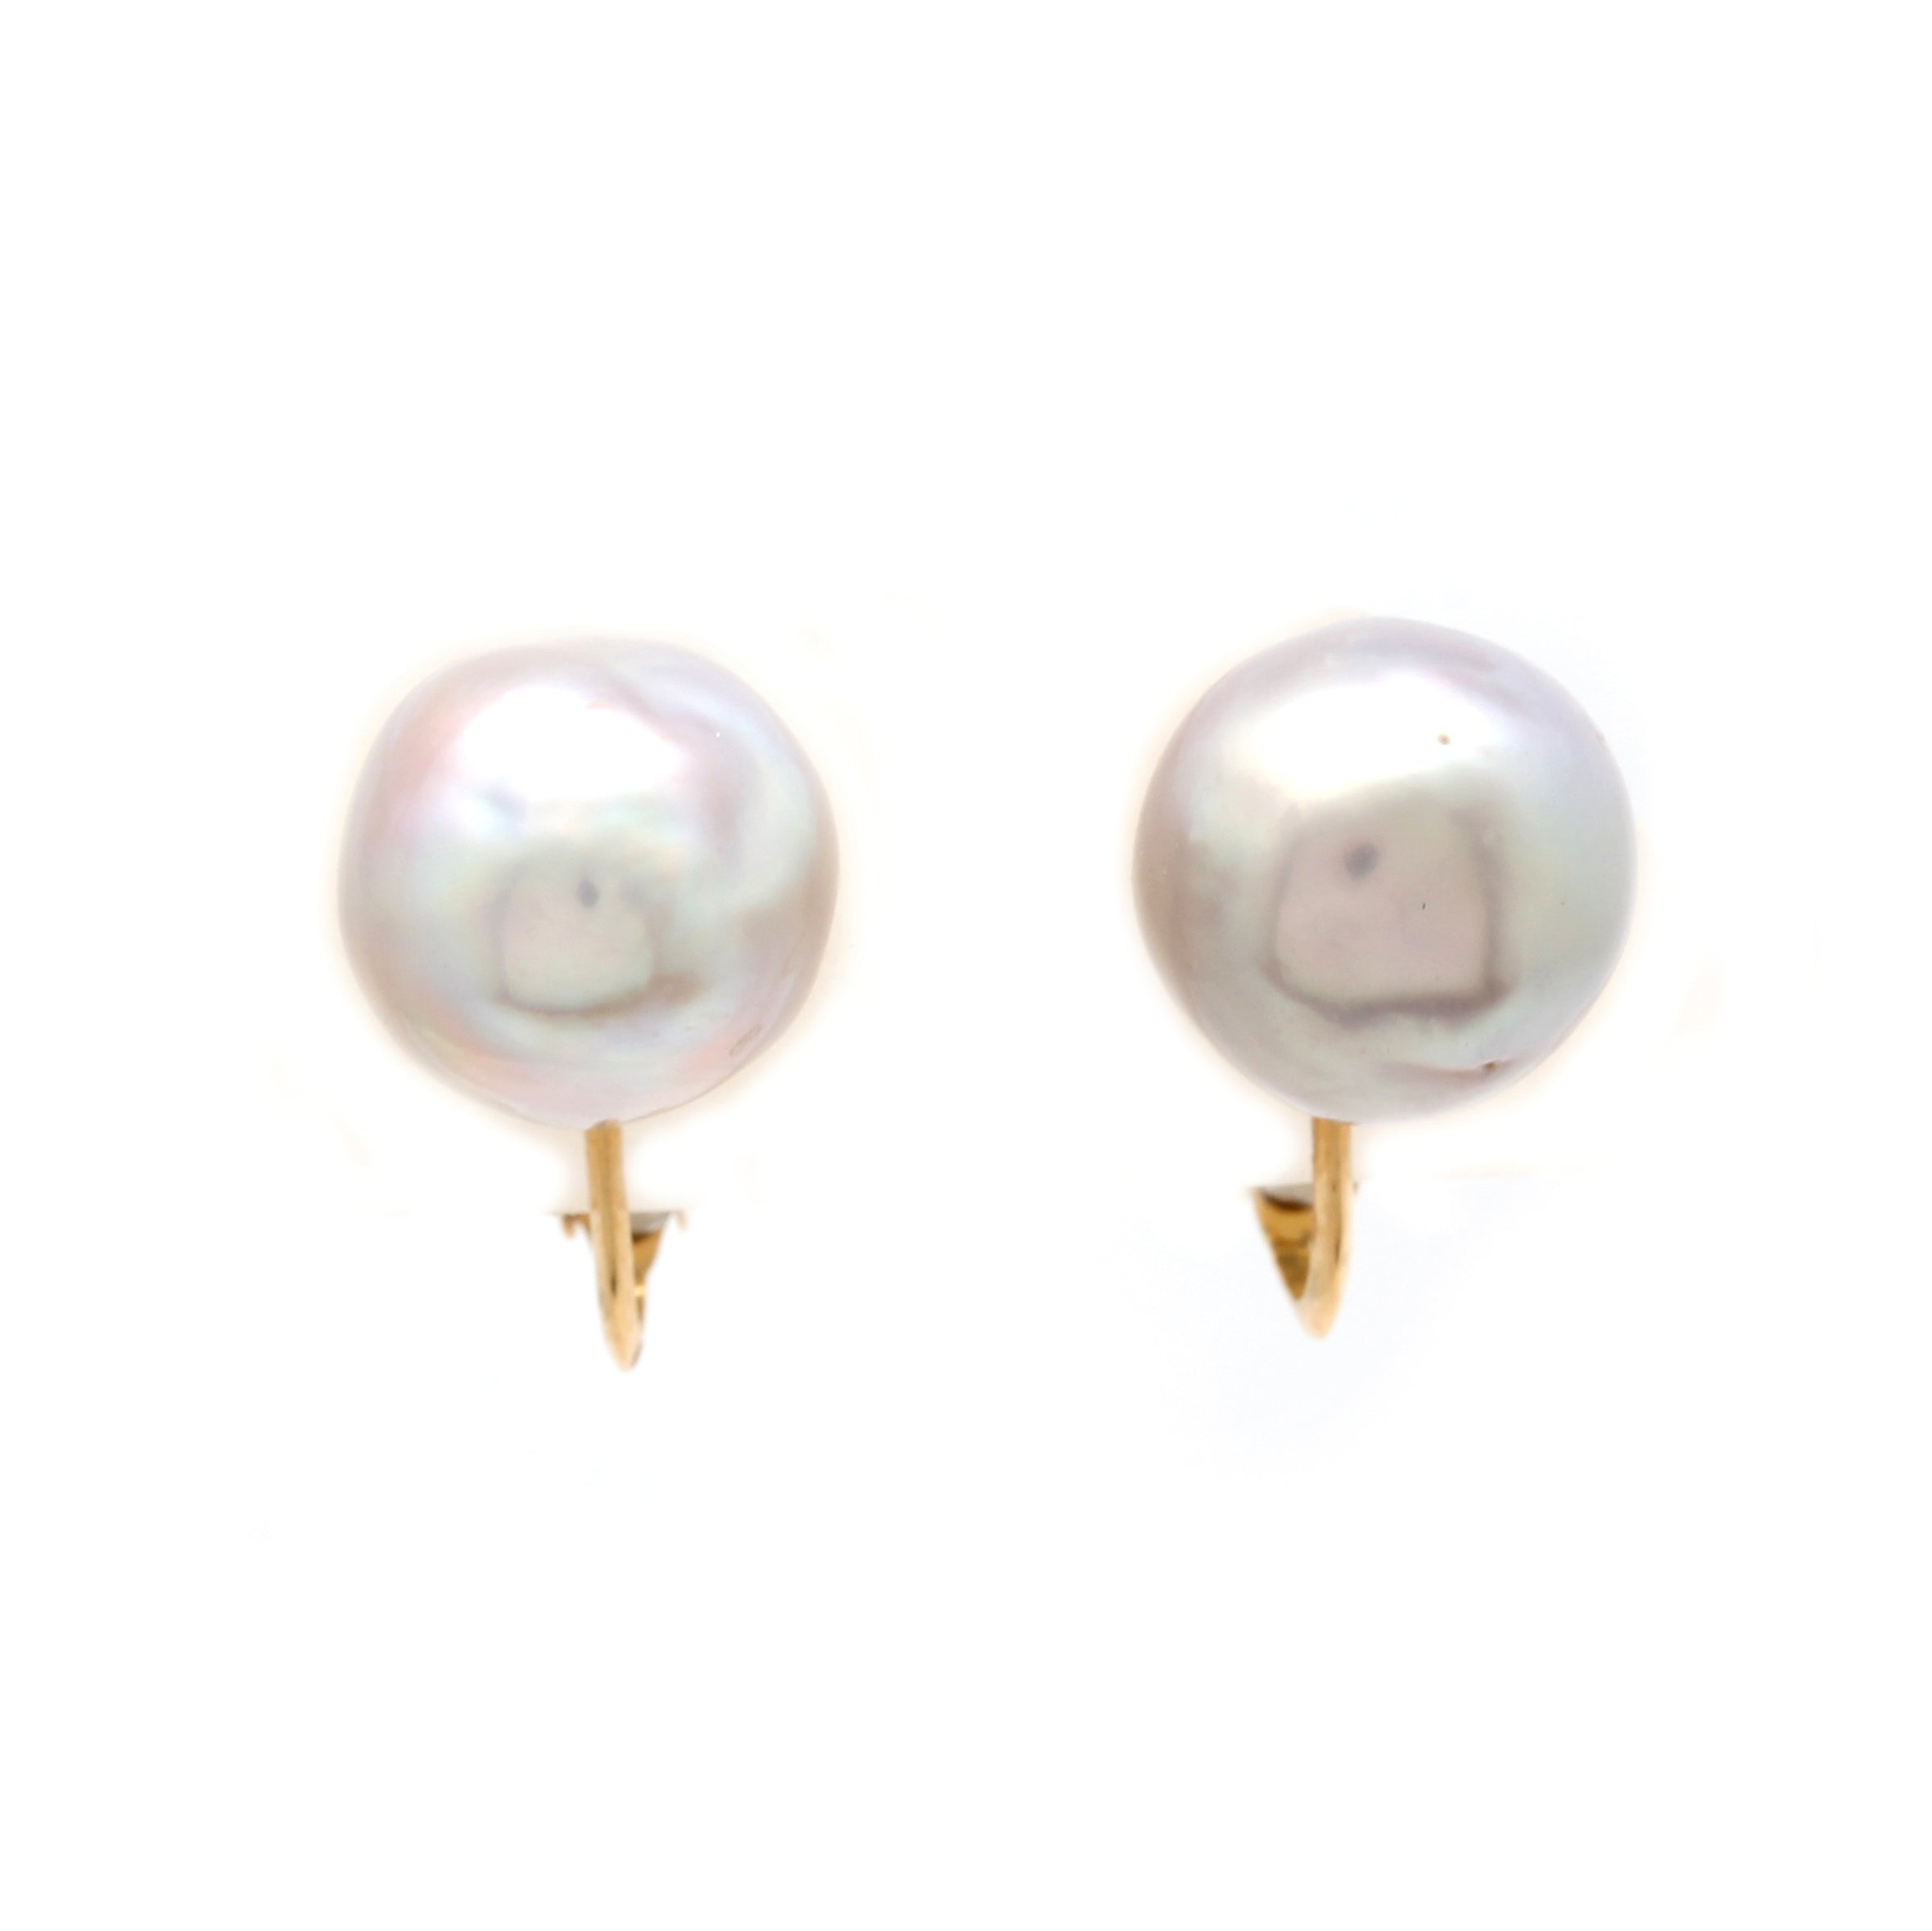 18K Yellow Gold Clip Earrings with Cortez Pearls